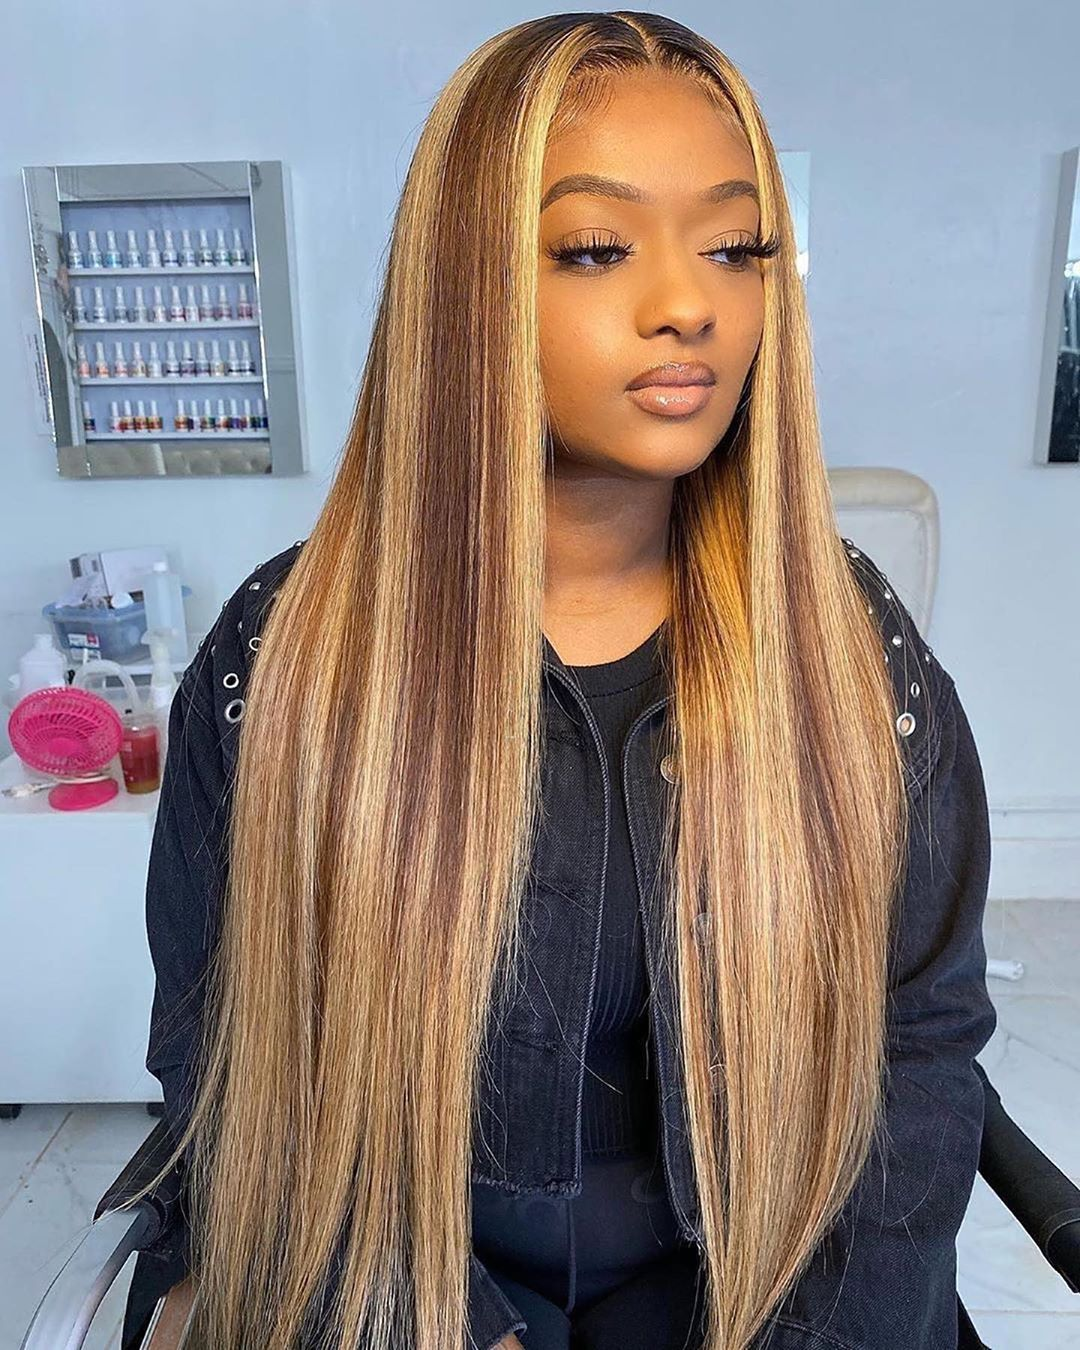 Lace Front Wigs Brown Wigs Blonde Wigs Ombre Blond Wig Frosty Blonde Hair Wigs For Black Women